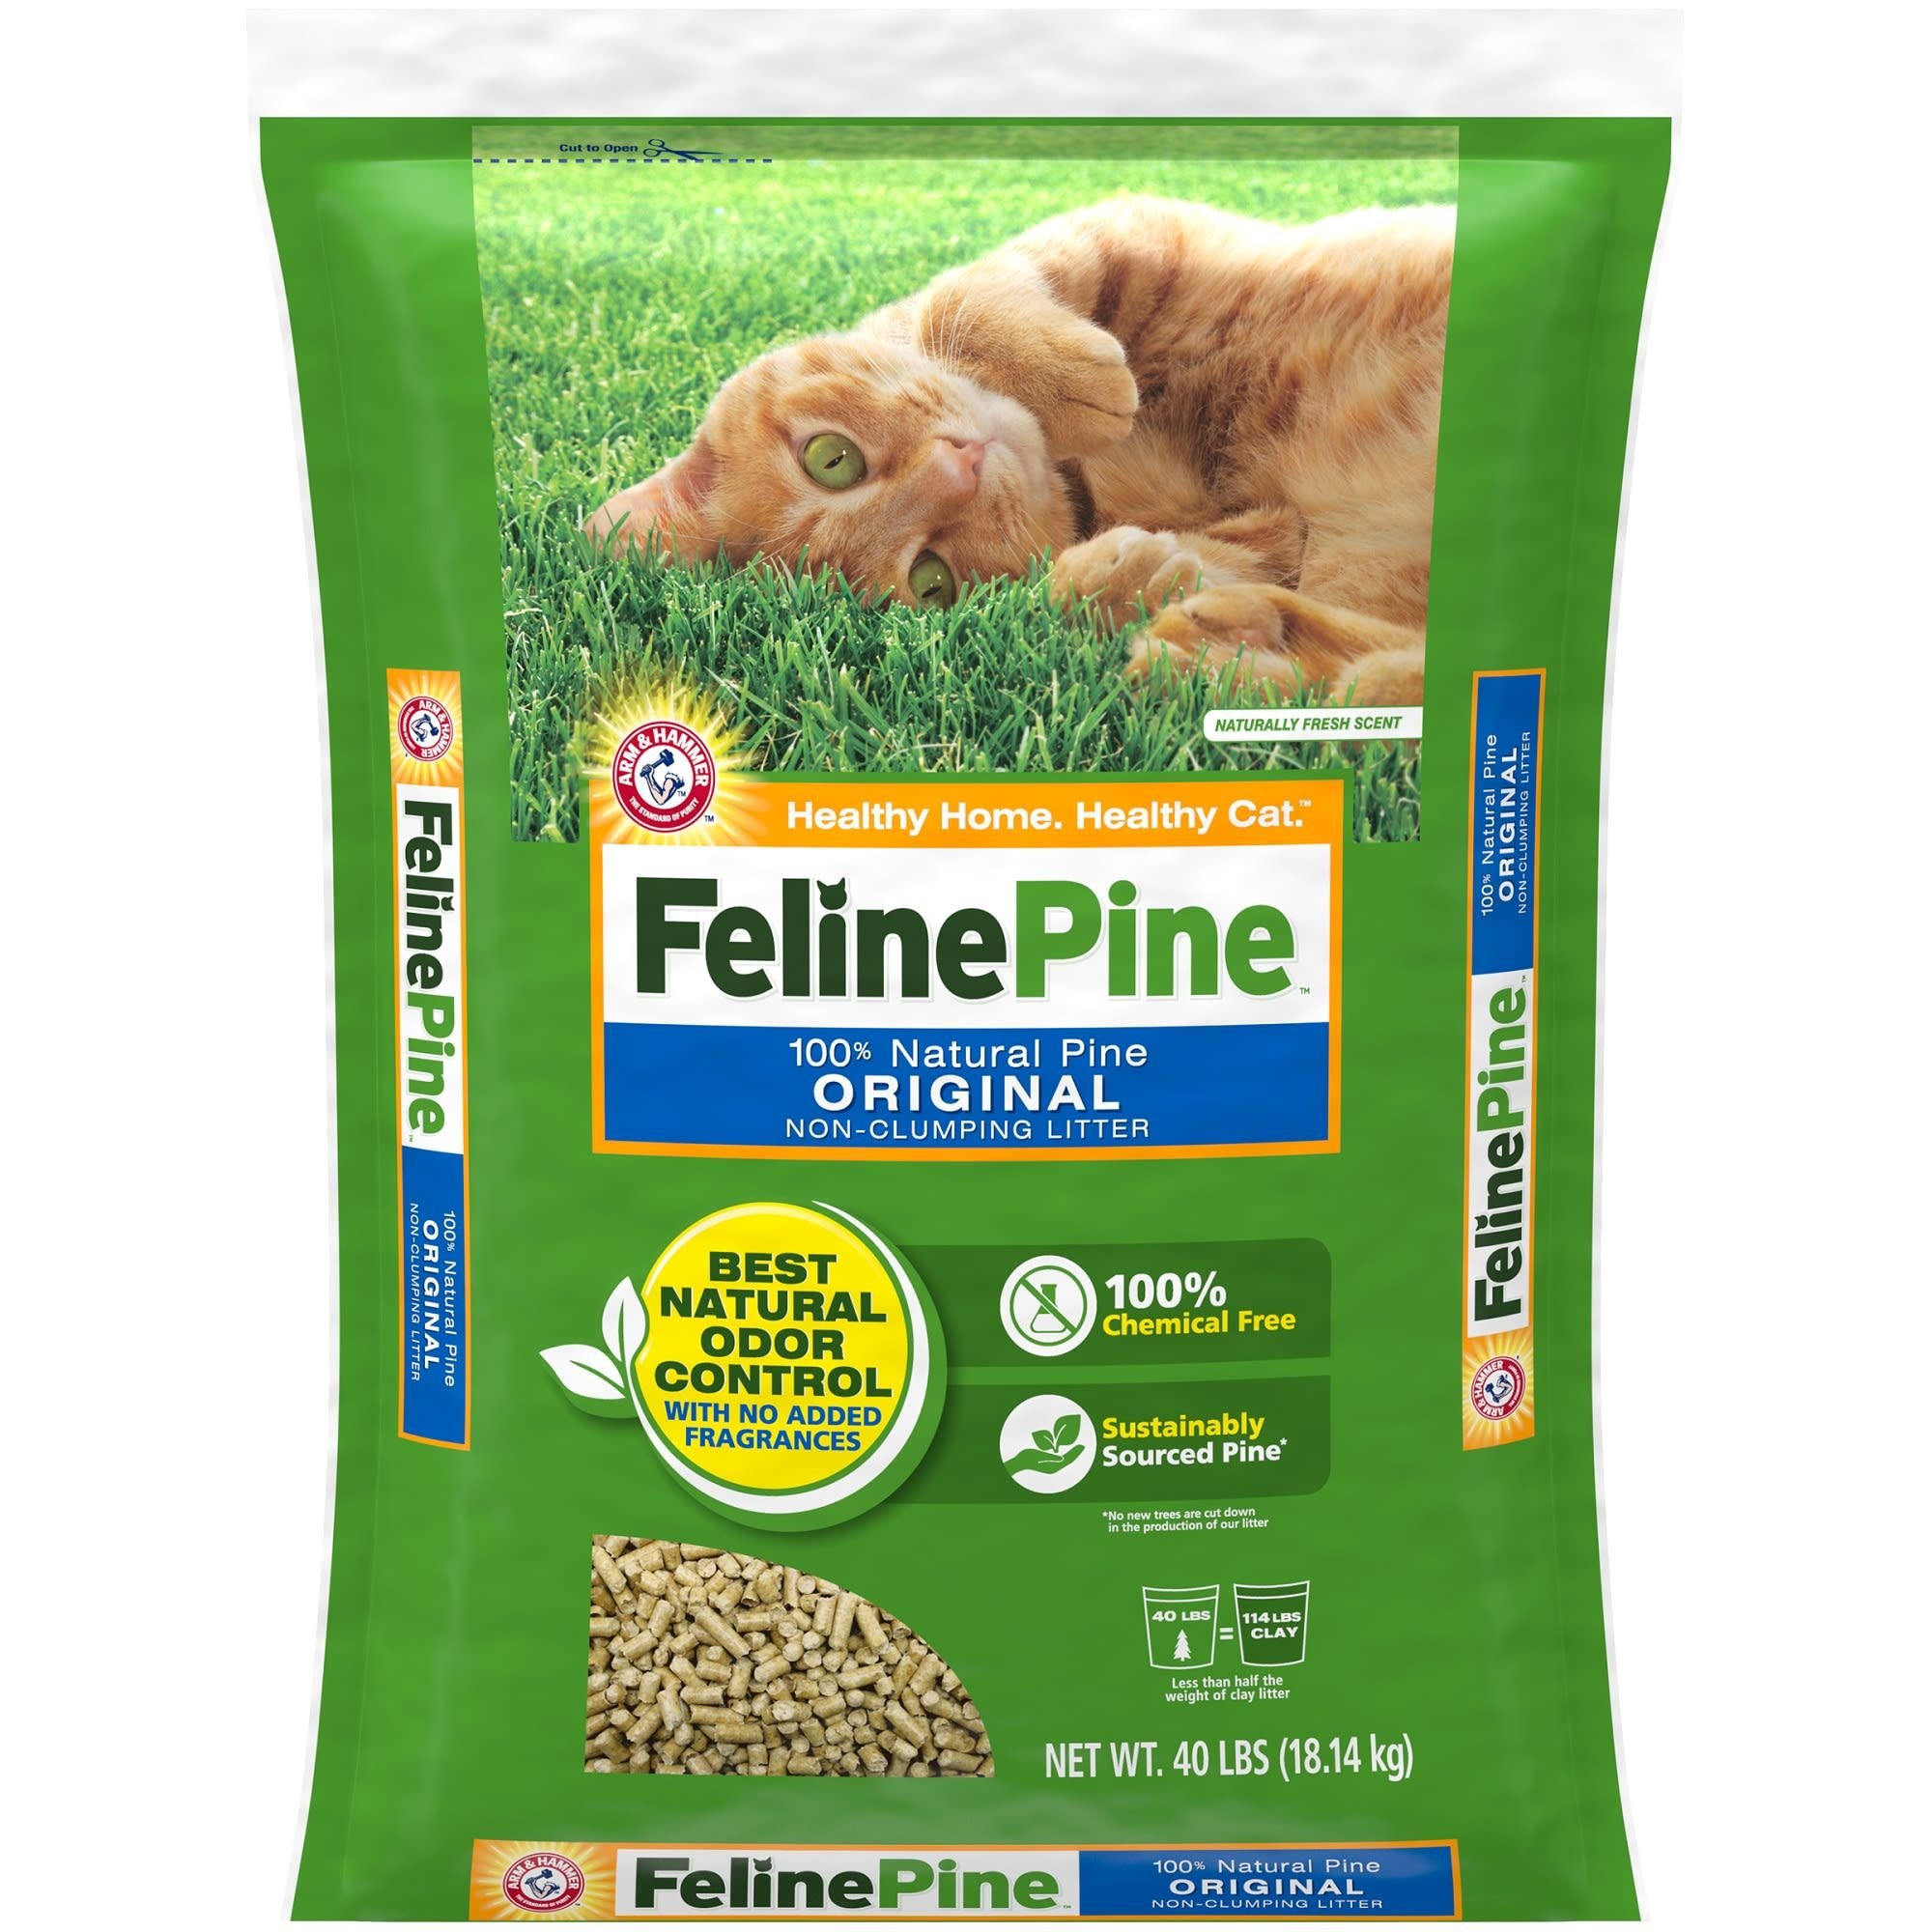 Feline Pine Cat Litter Petco in 2020 Pine cat litter